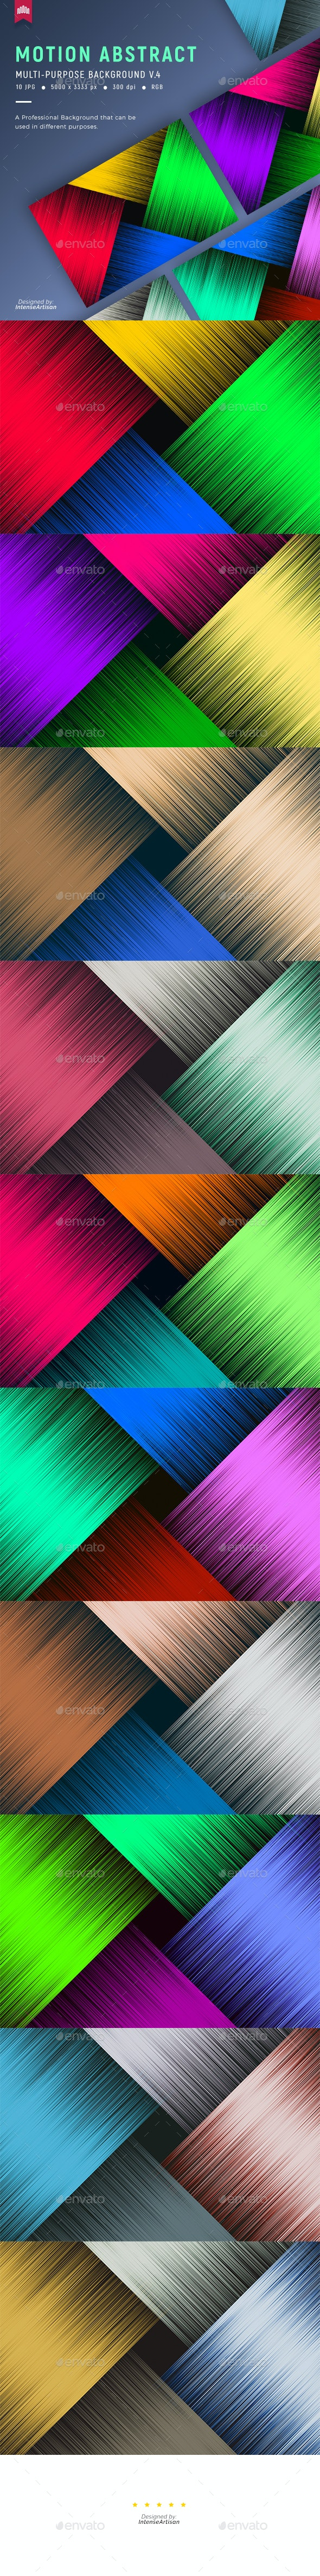 Motion Abstract - Background V.4 - Abstract Backgrounds